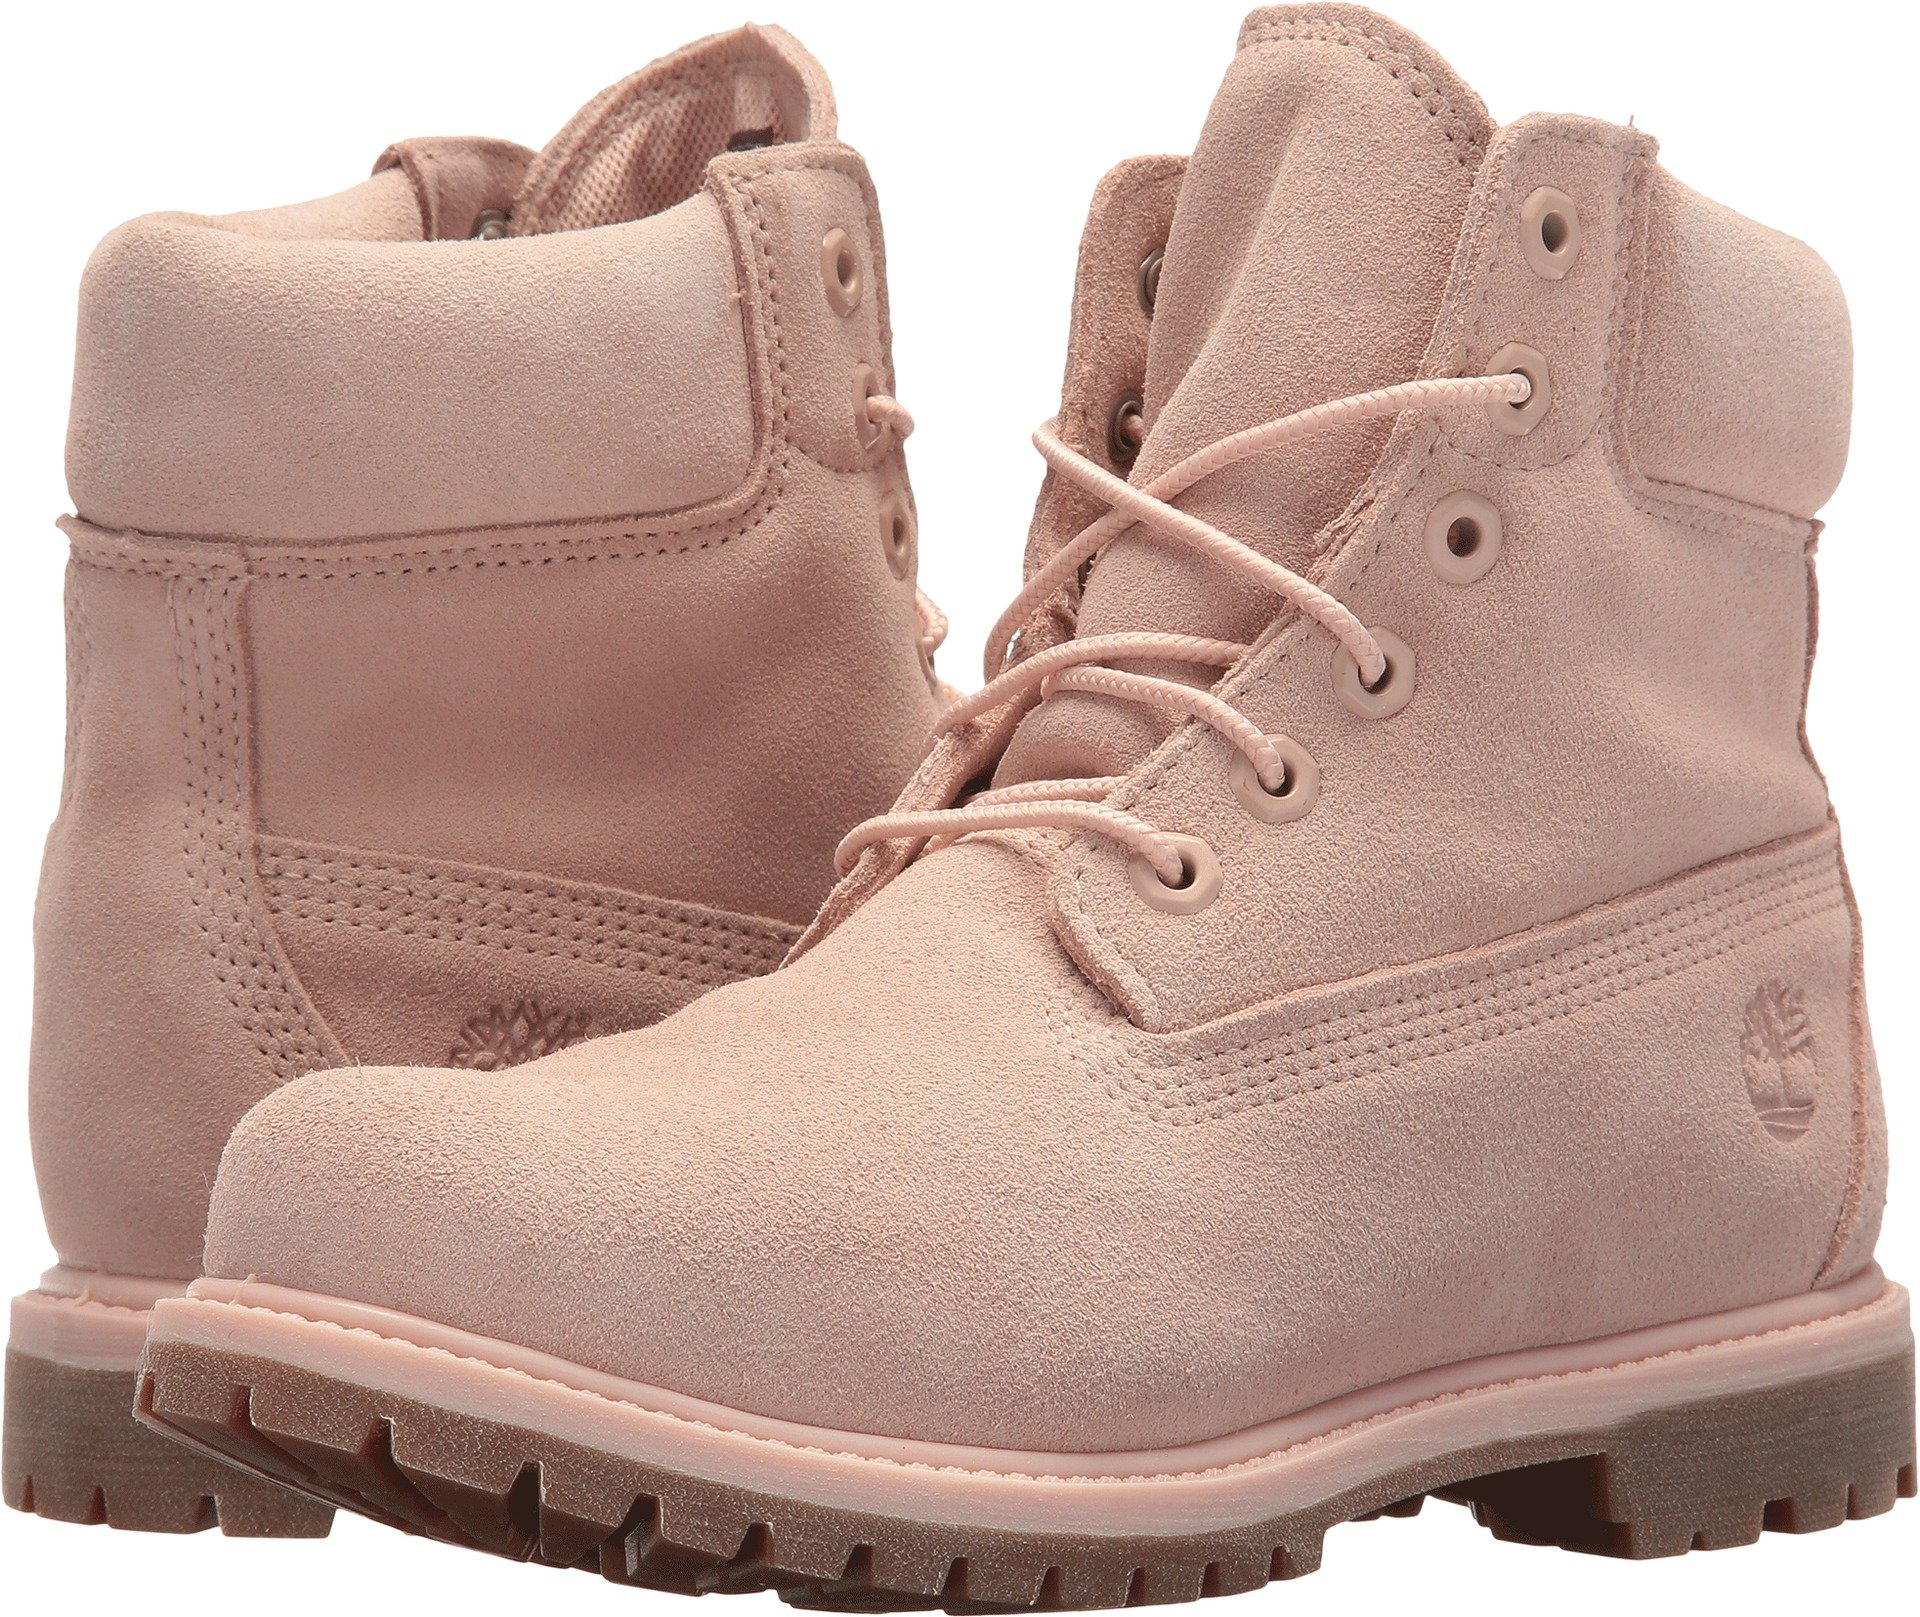 Timberland Womens 6'' Premium Boot Camo Rose Suede 11 B - Medium